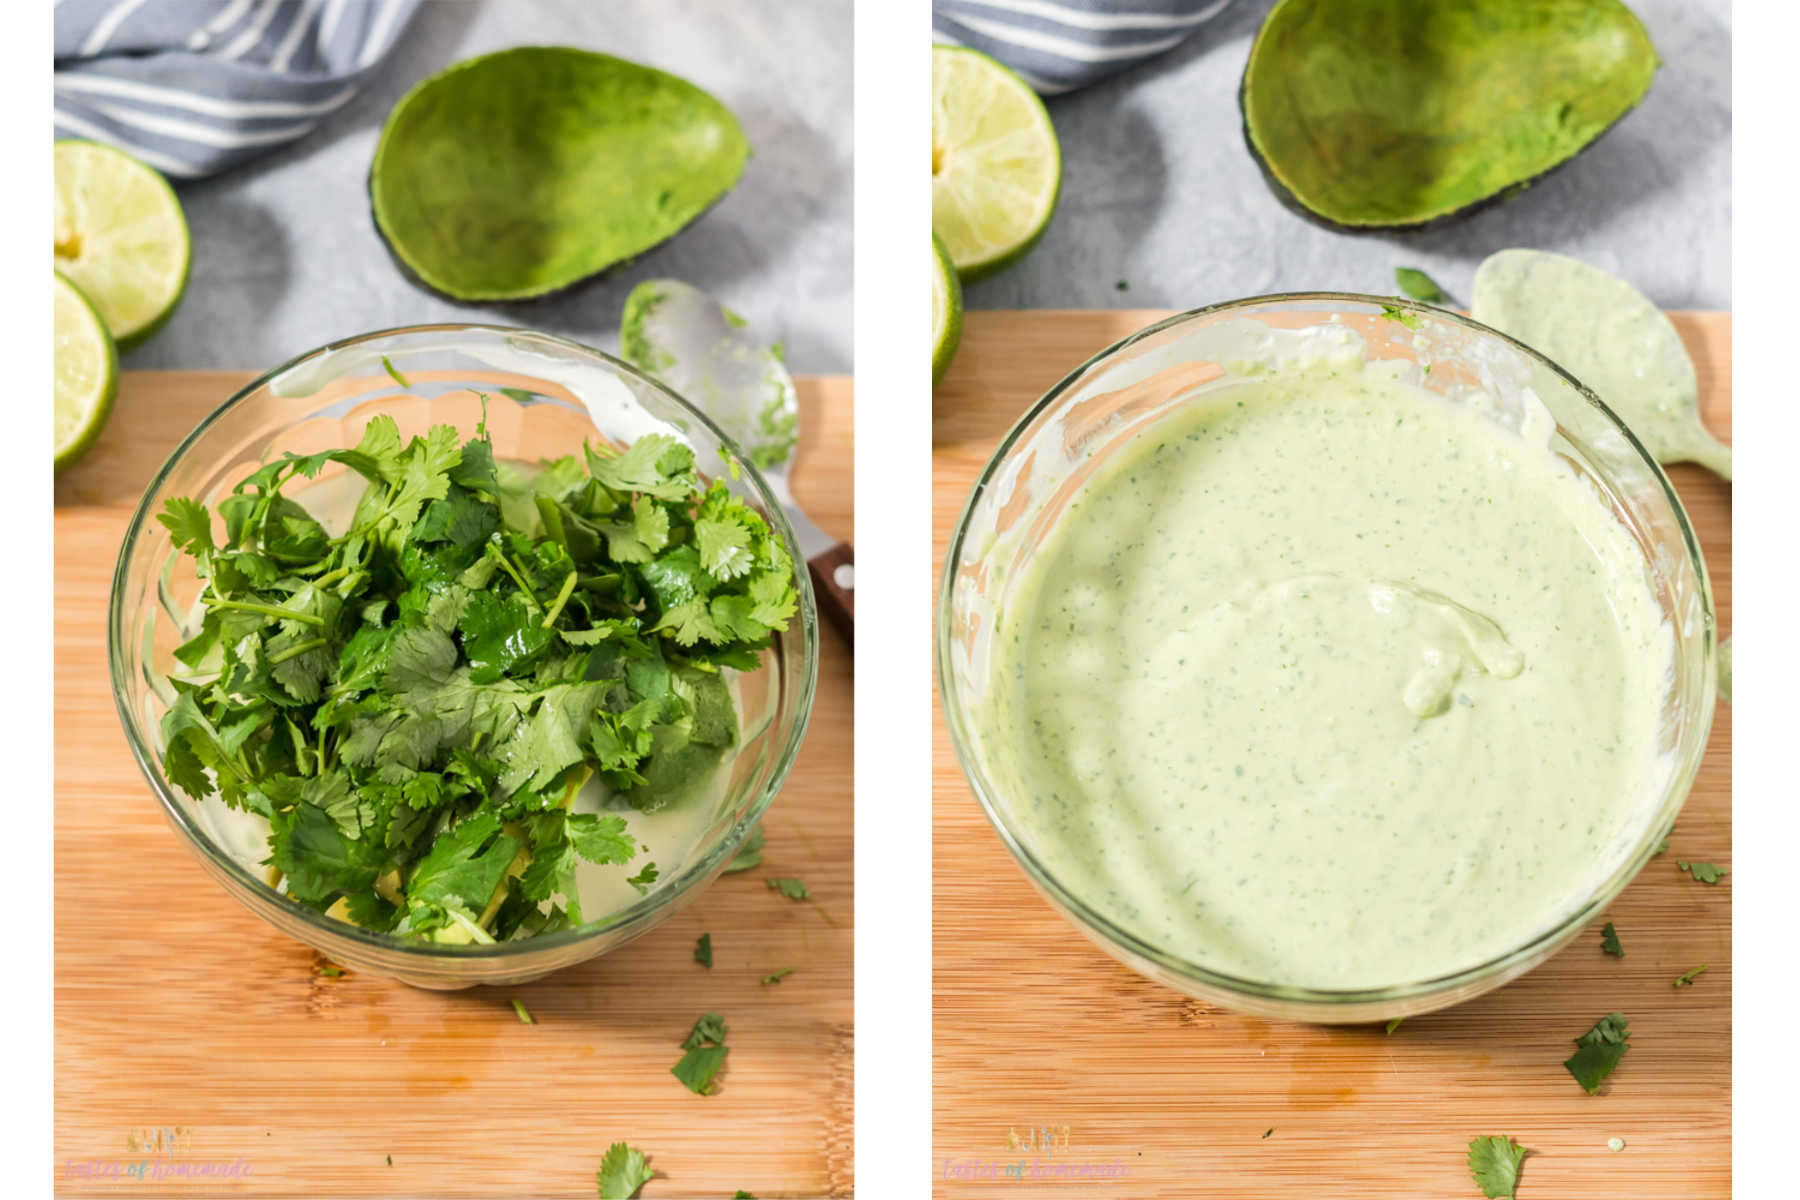 A bowl of yogurt, avocado, lime and cilantro sits on the left.